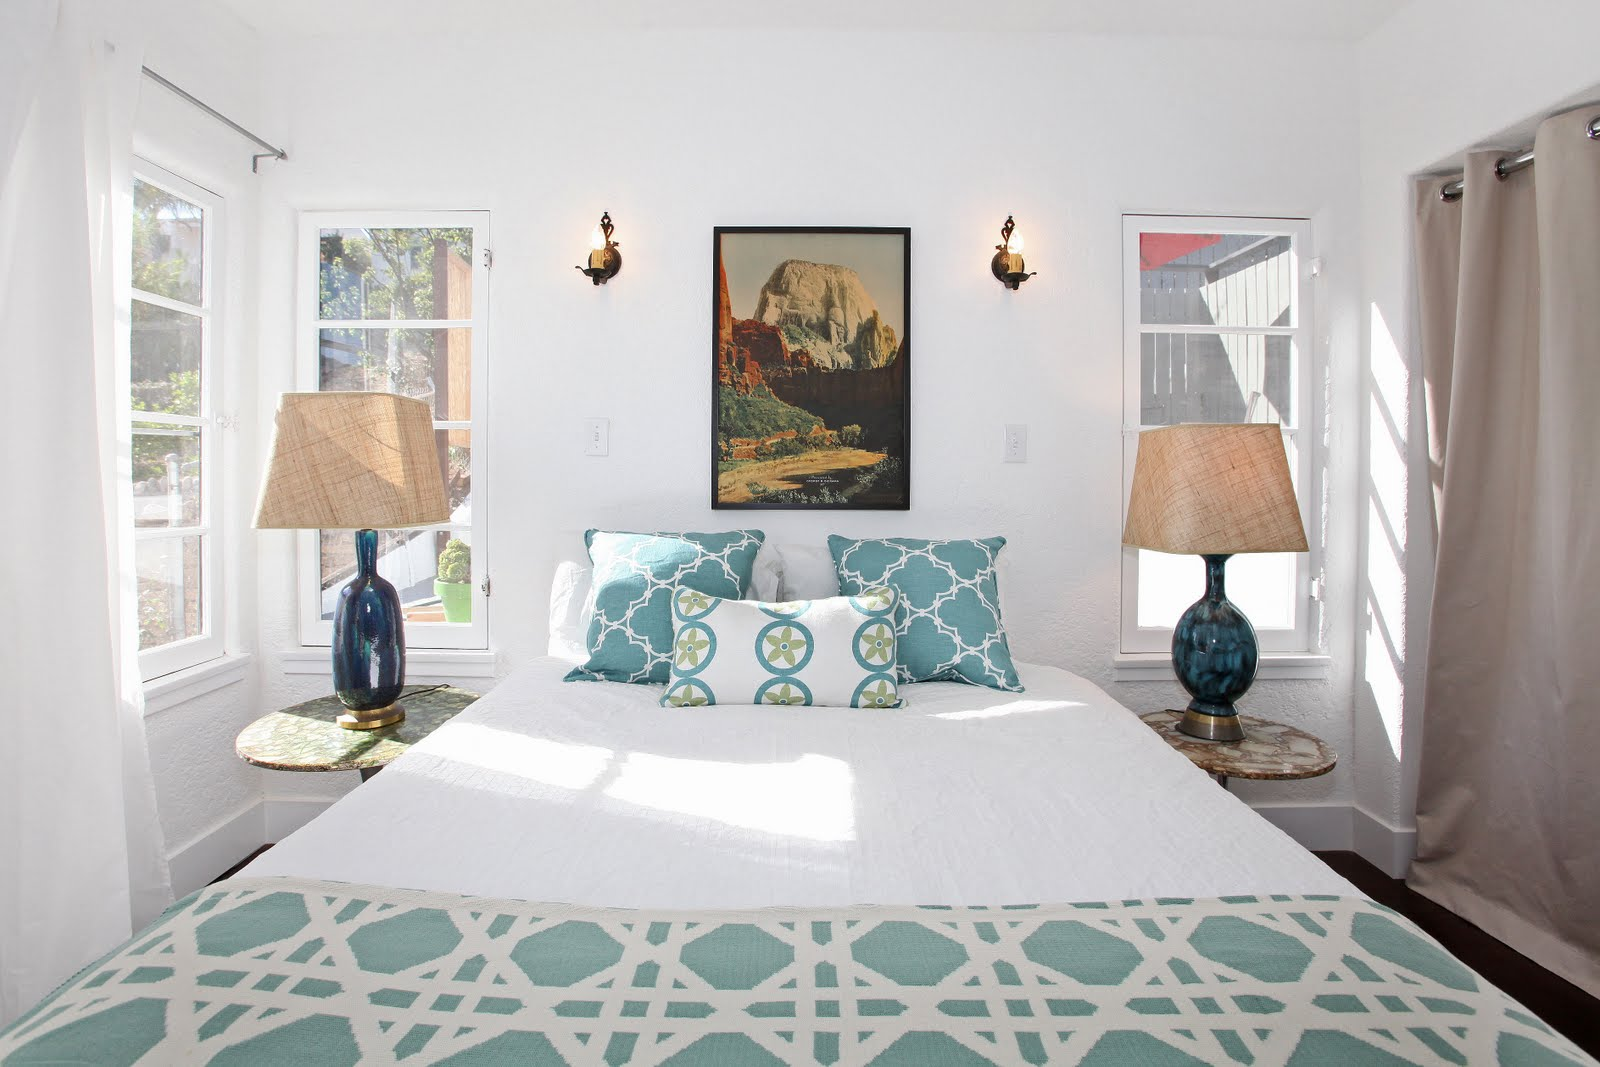 White Bedroom In A Spanish Style Home With Vintage Lamps On Matching Side  Tables, A